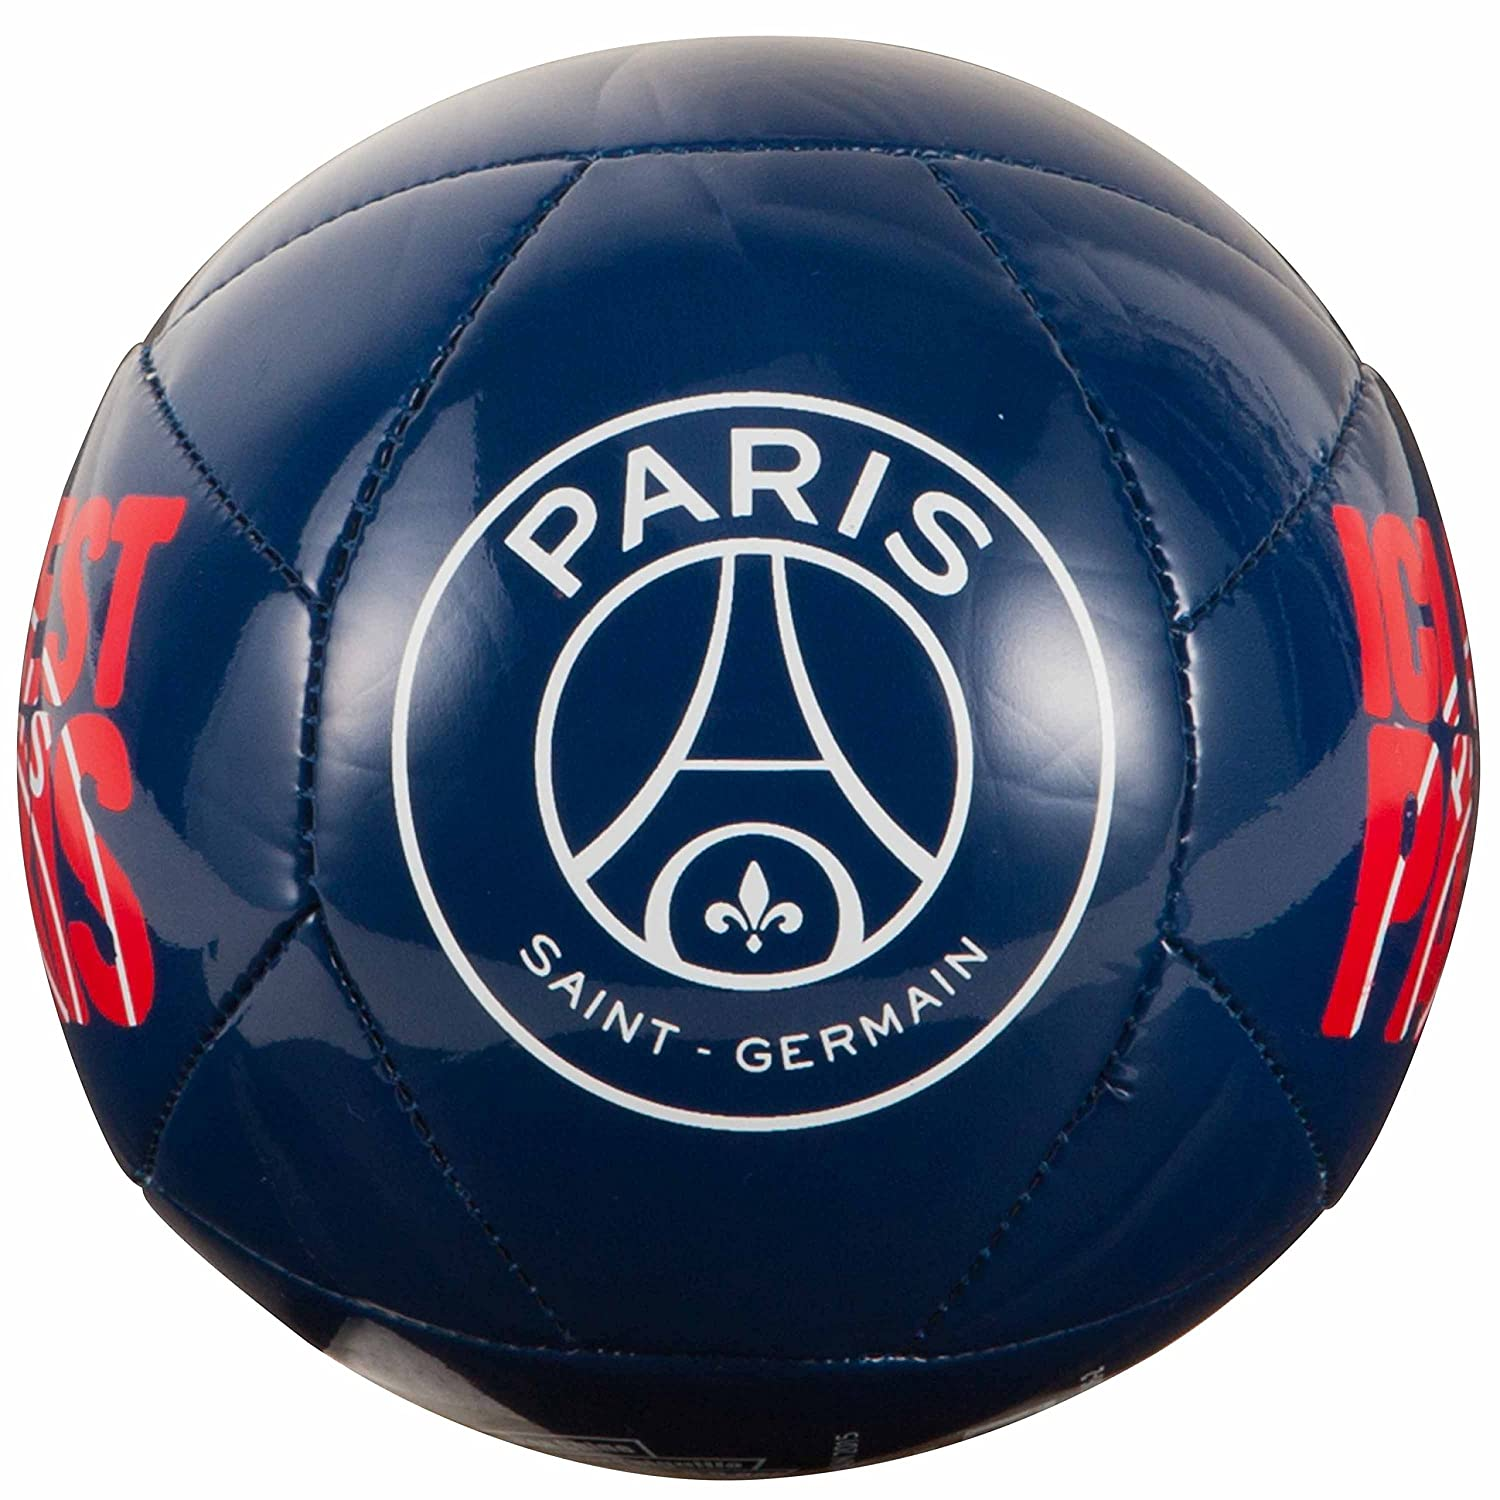 Balón Ici c EST Paris Paris Saint Germain - Talla 5: Amazon.es ...